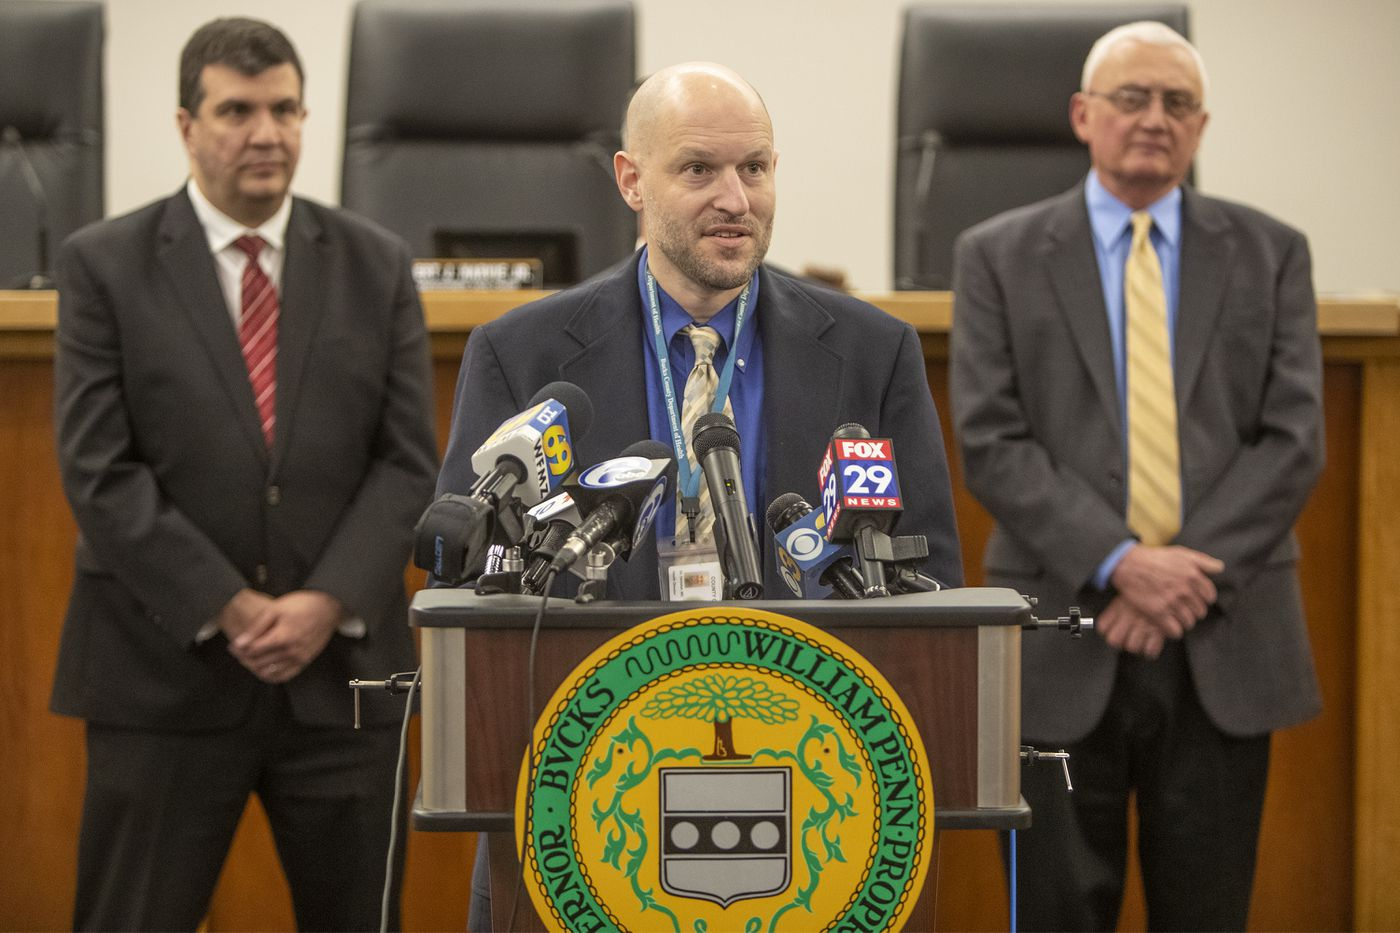 Dr. David C. Damsker, the director of the Bucks County Health Department, speaks at a Wednesday briefing.